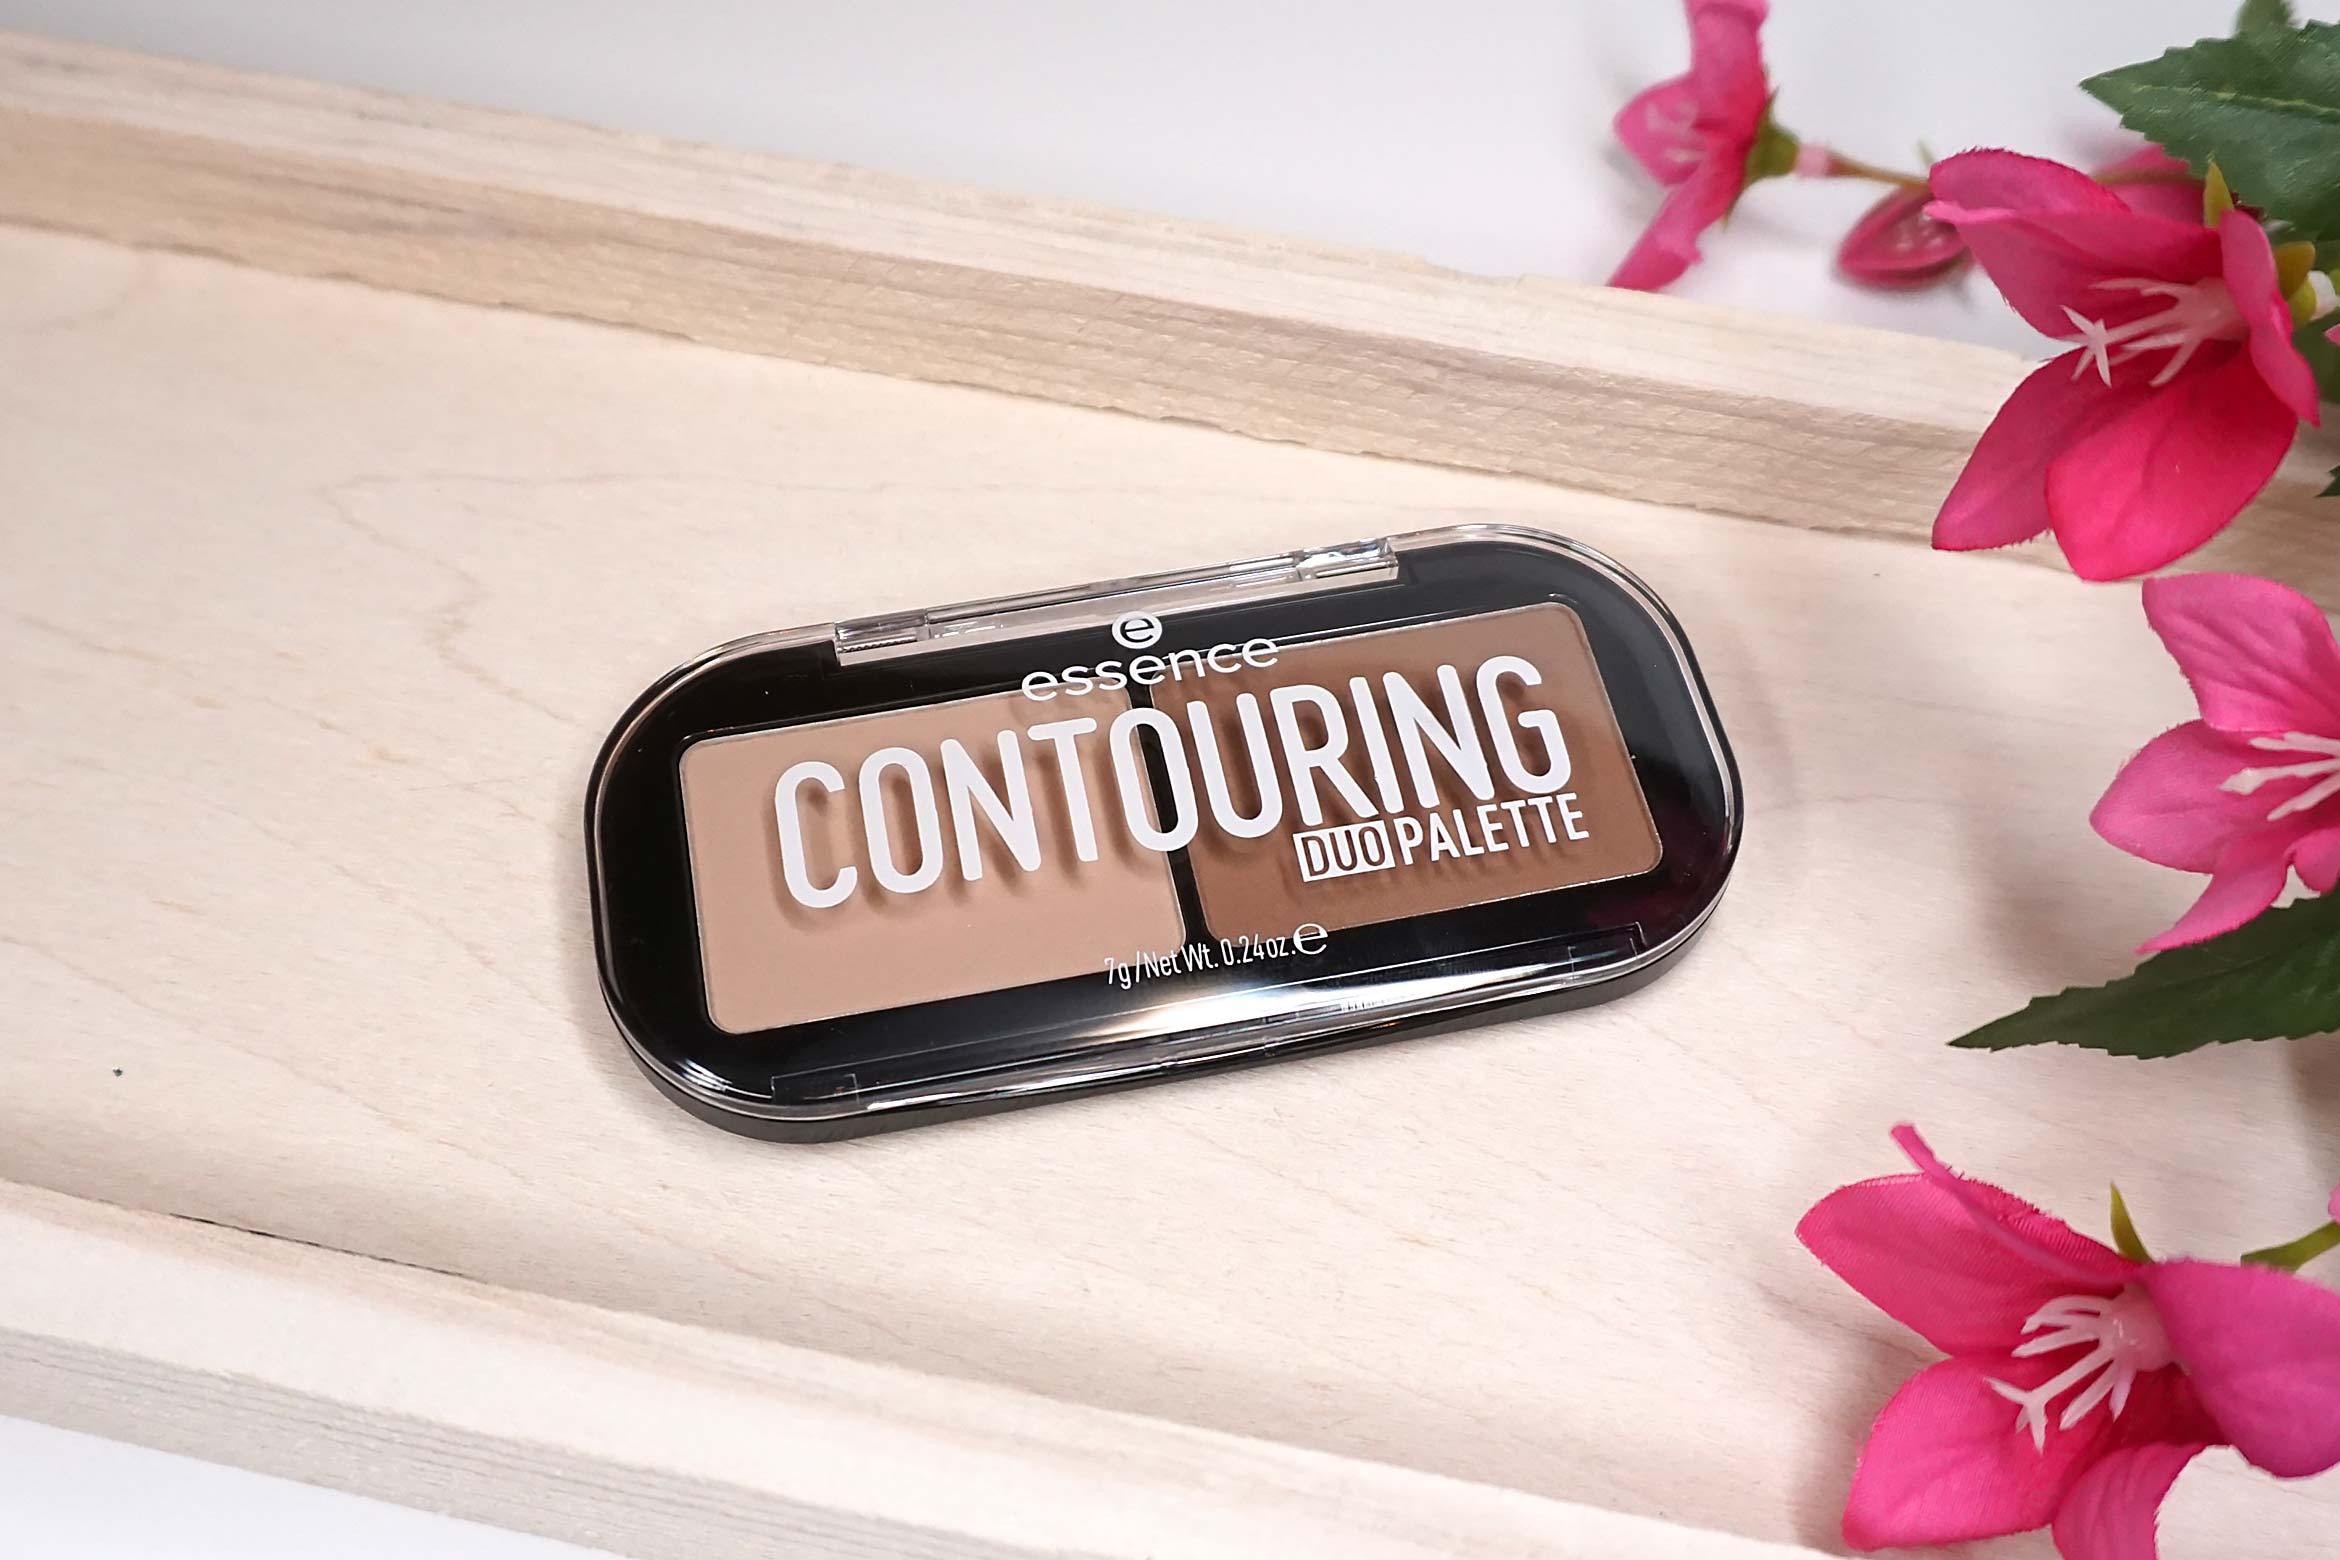 essence-contouring-duo-palette-review-2